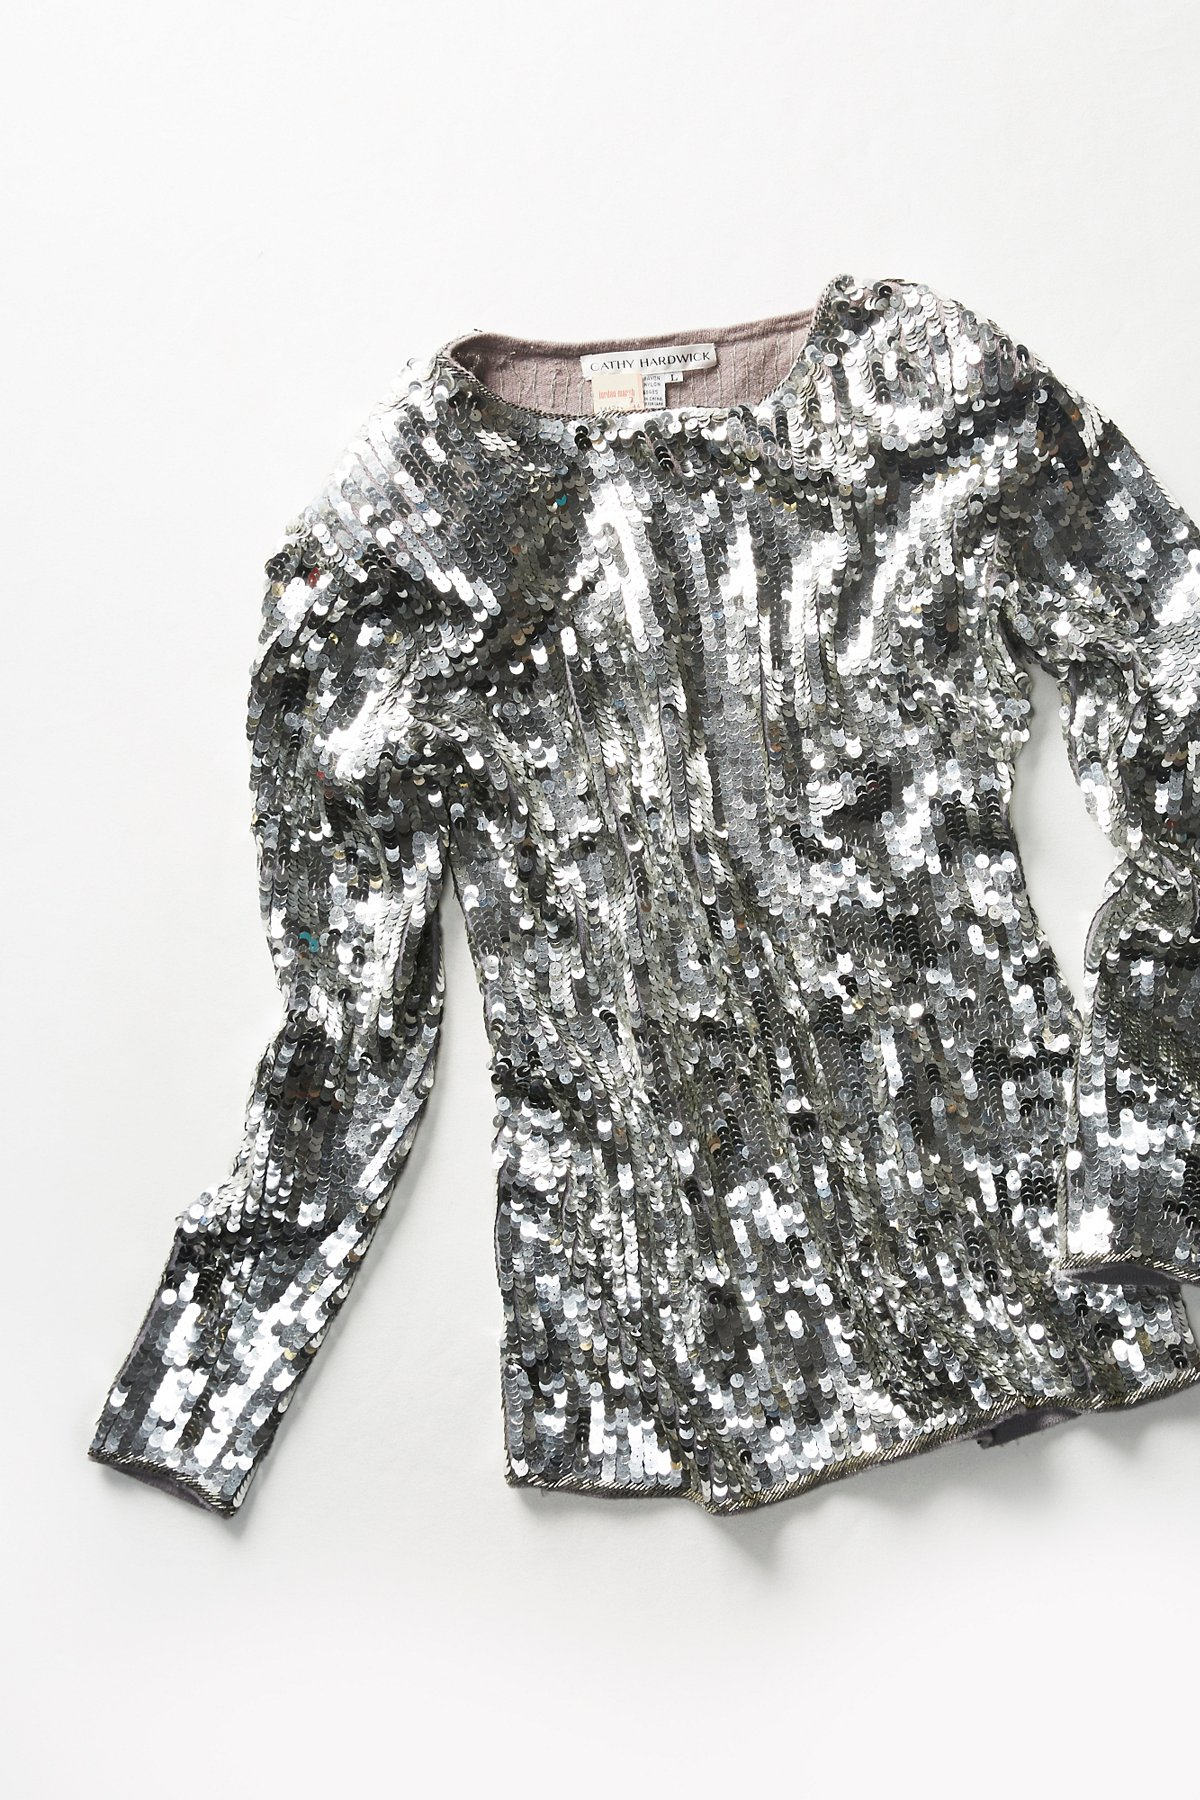 Vintage 1980s Sequin Top